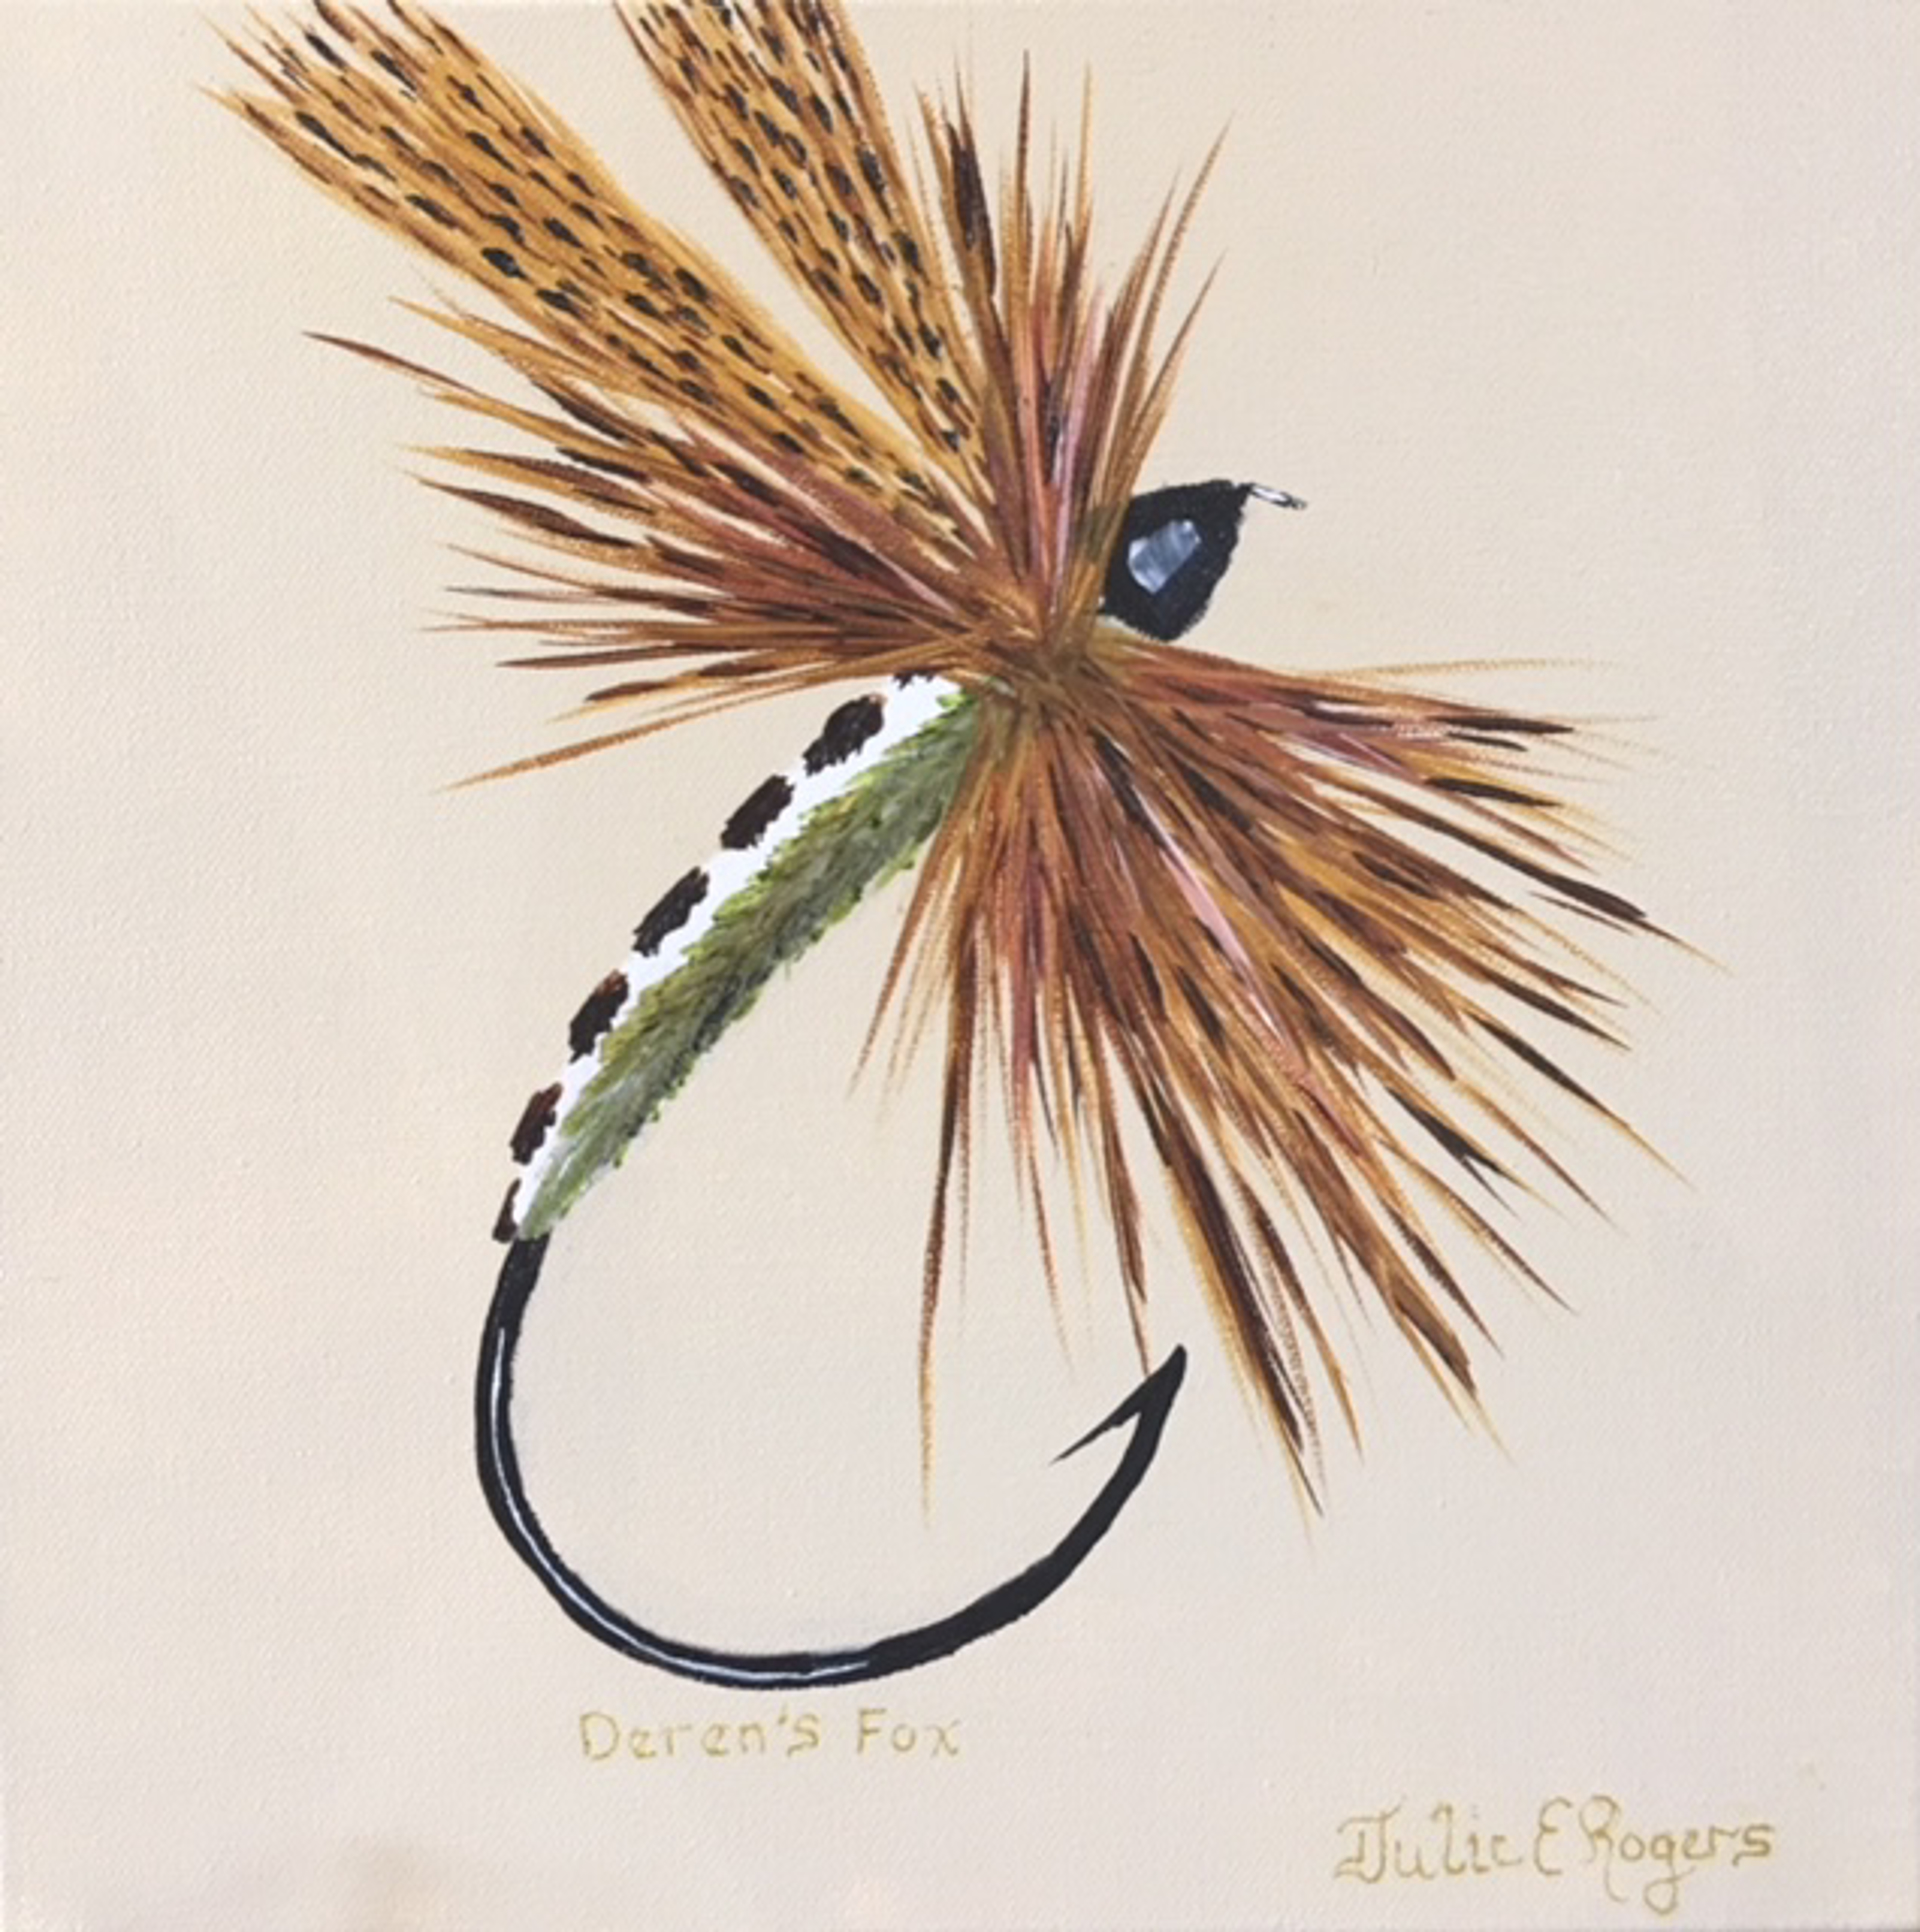 Deren's Fox Dry Fly by Julie Rogers